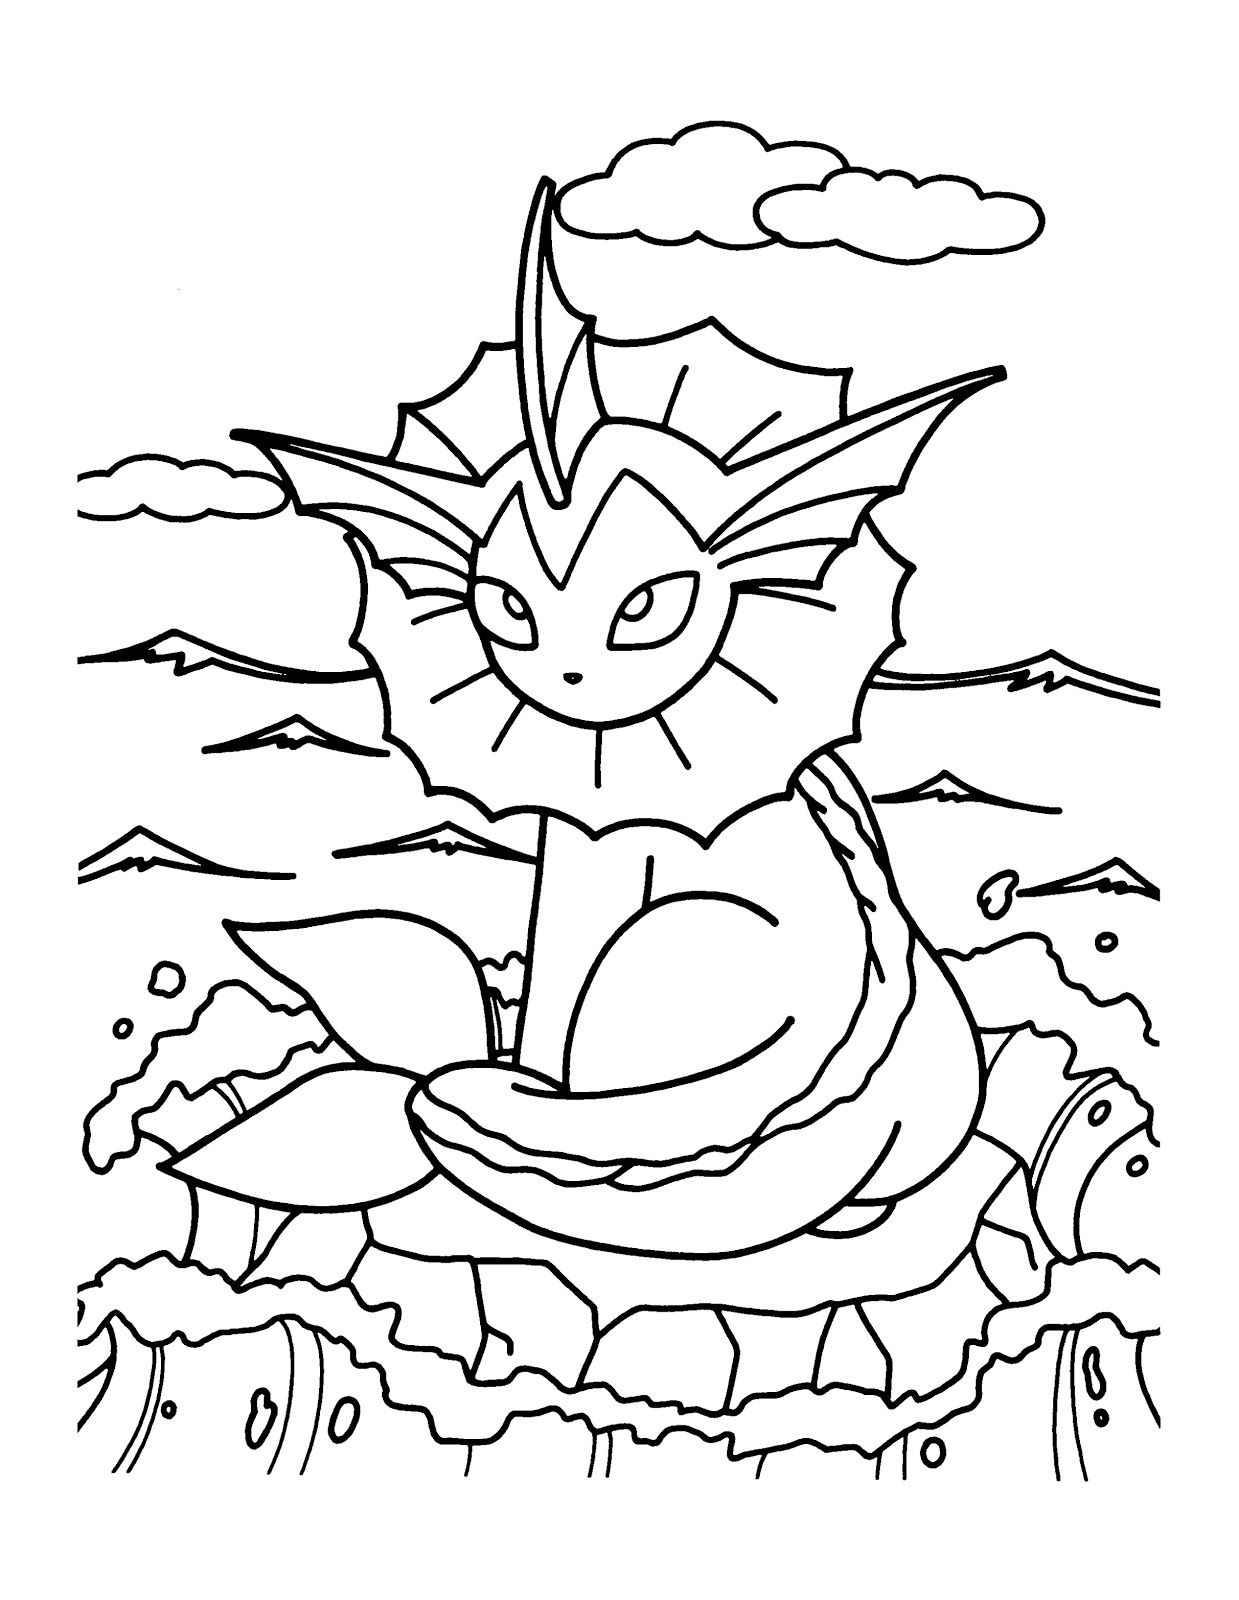 Printable Pokemon Vaporeon Coloring Pages Superhero Coloring Pages Bear Coloring Pages Animal Coloring Pages